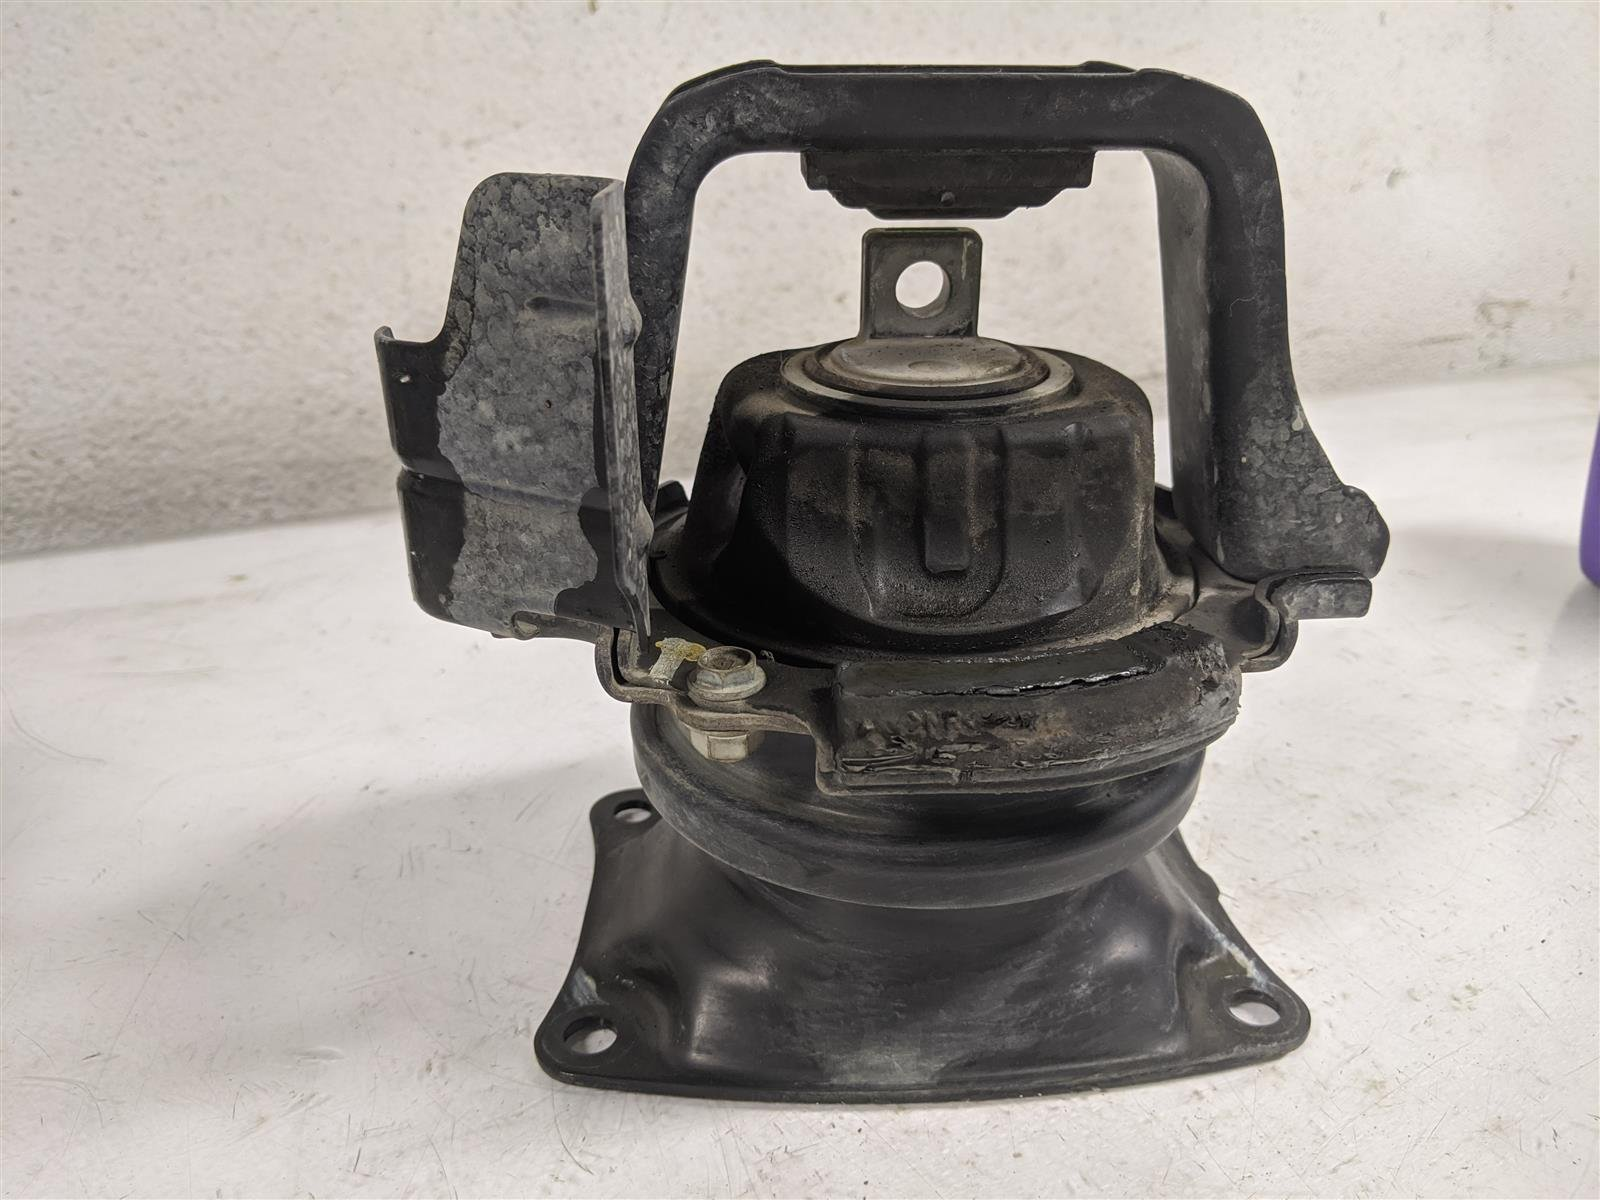 2014 Honda Odyssey Rear Engine Mount Replacement